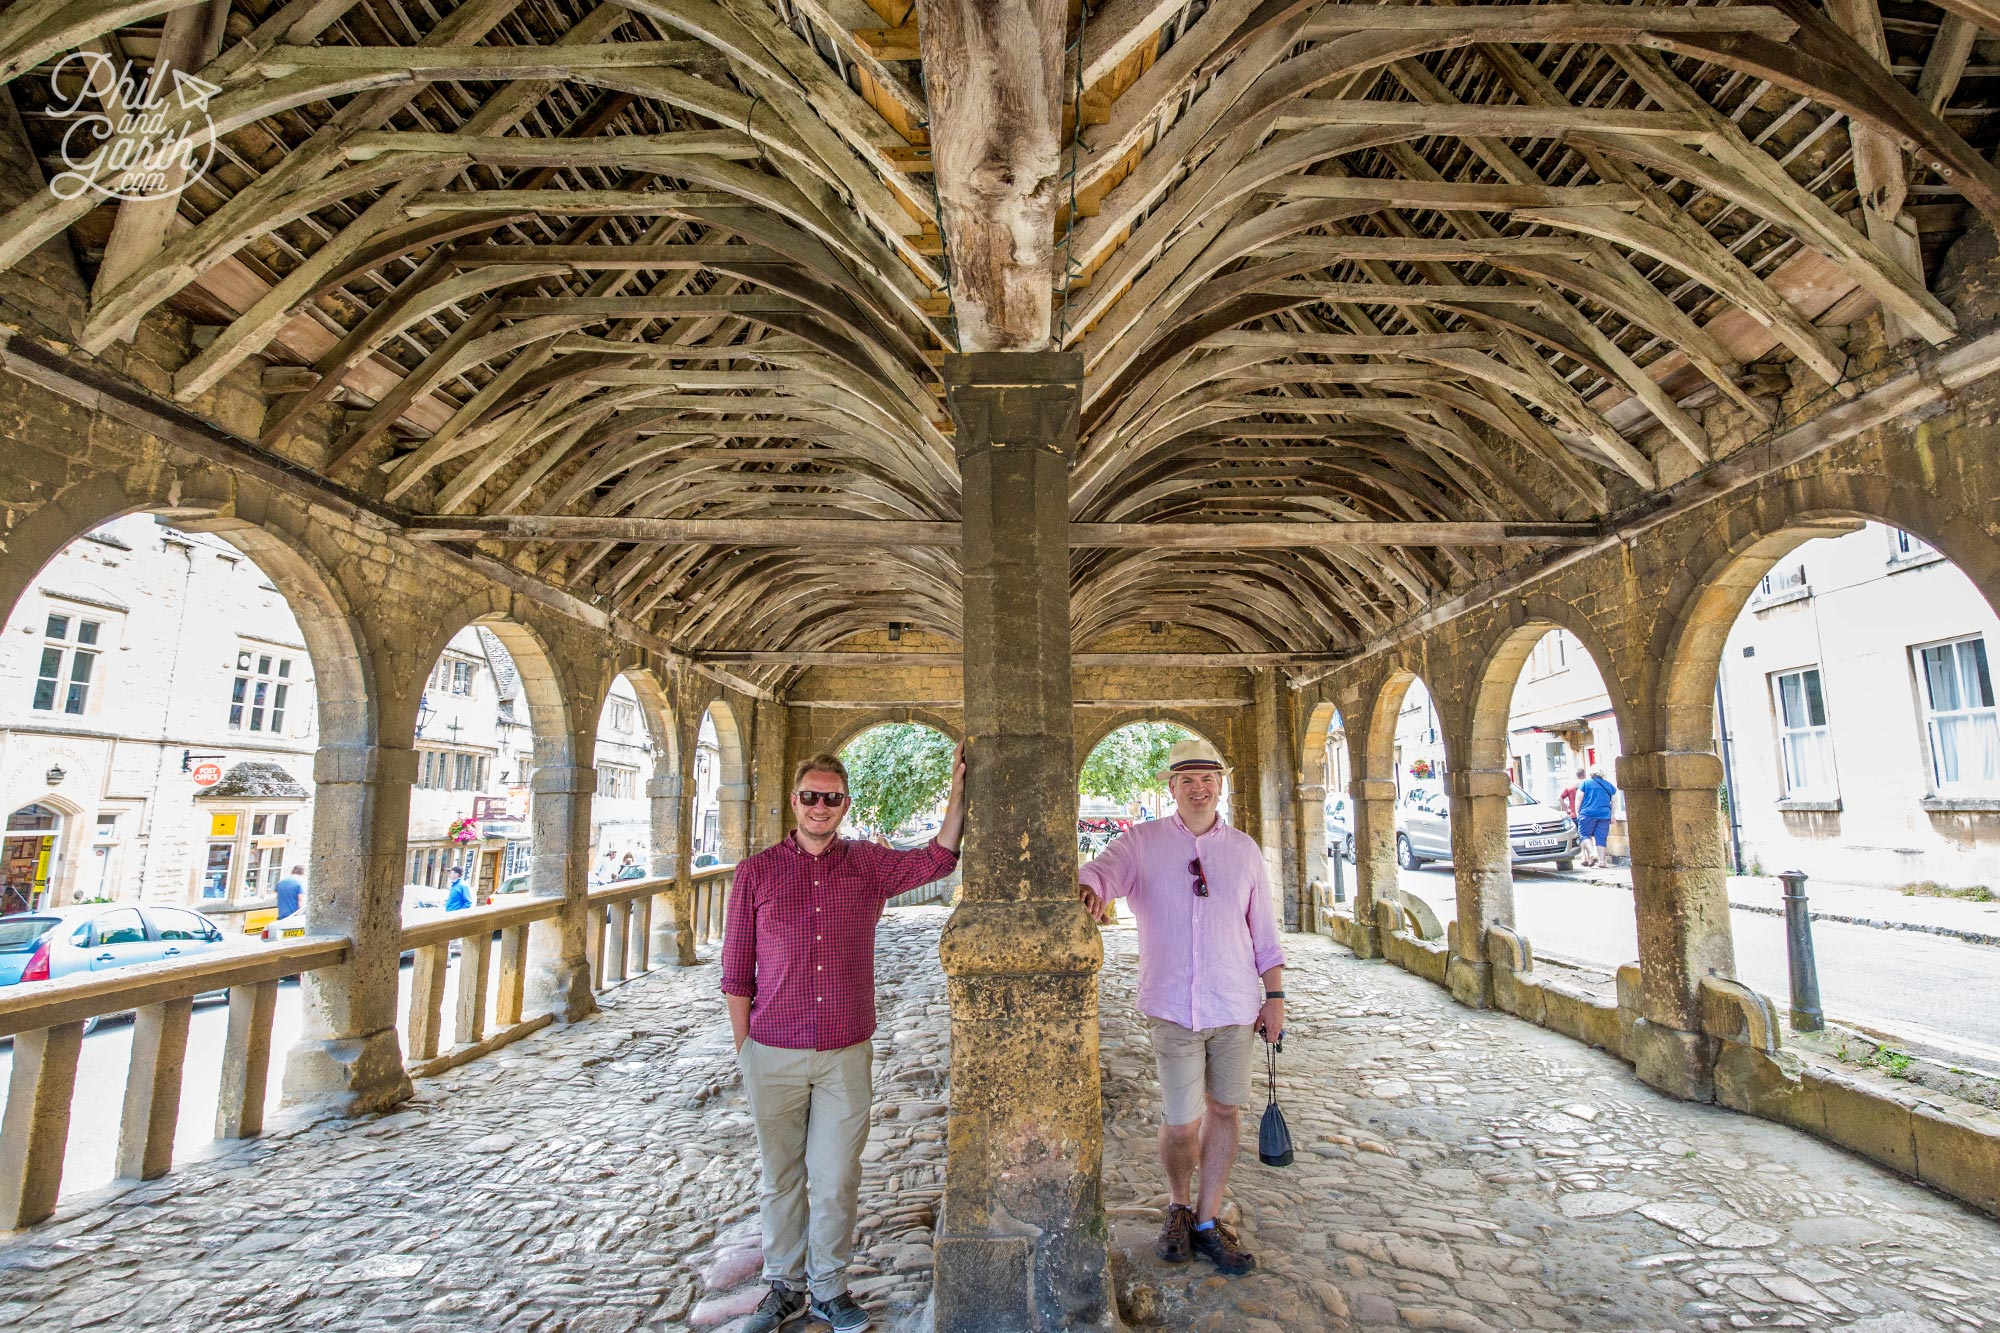 The 400 year old Chipping Campden market hall